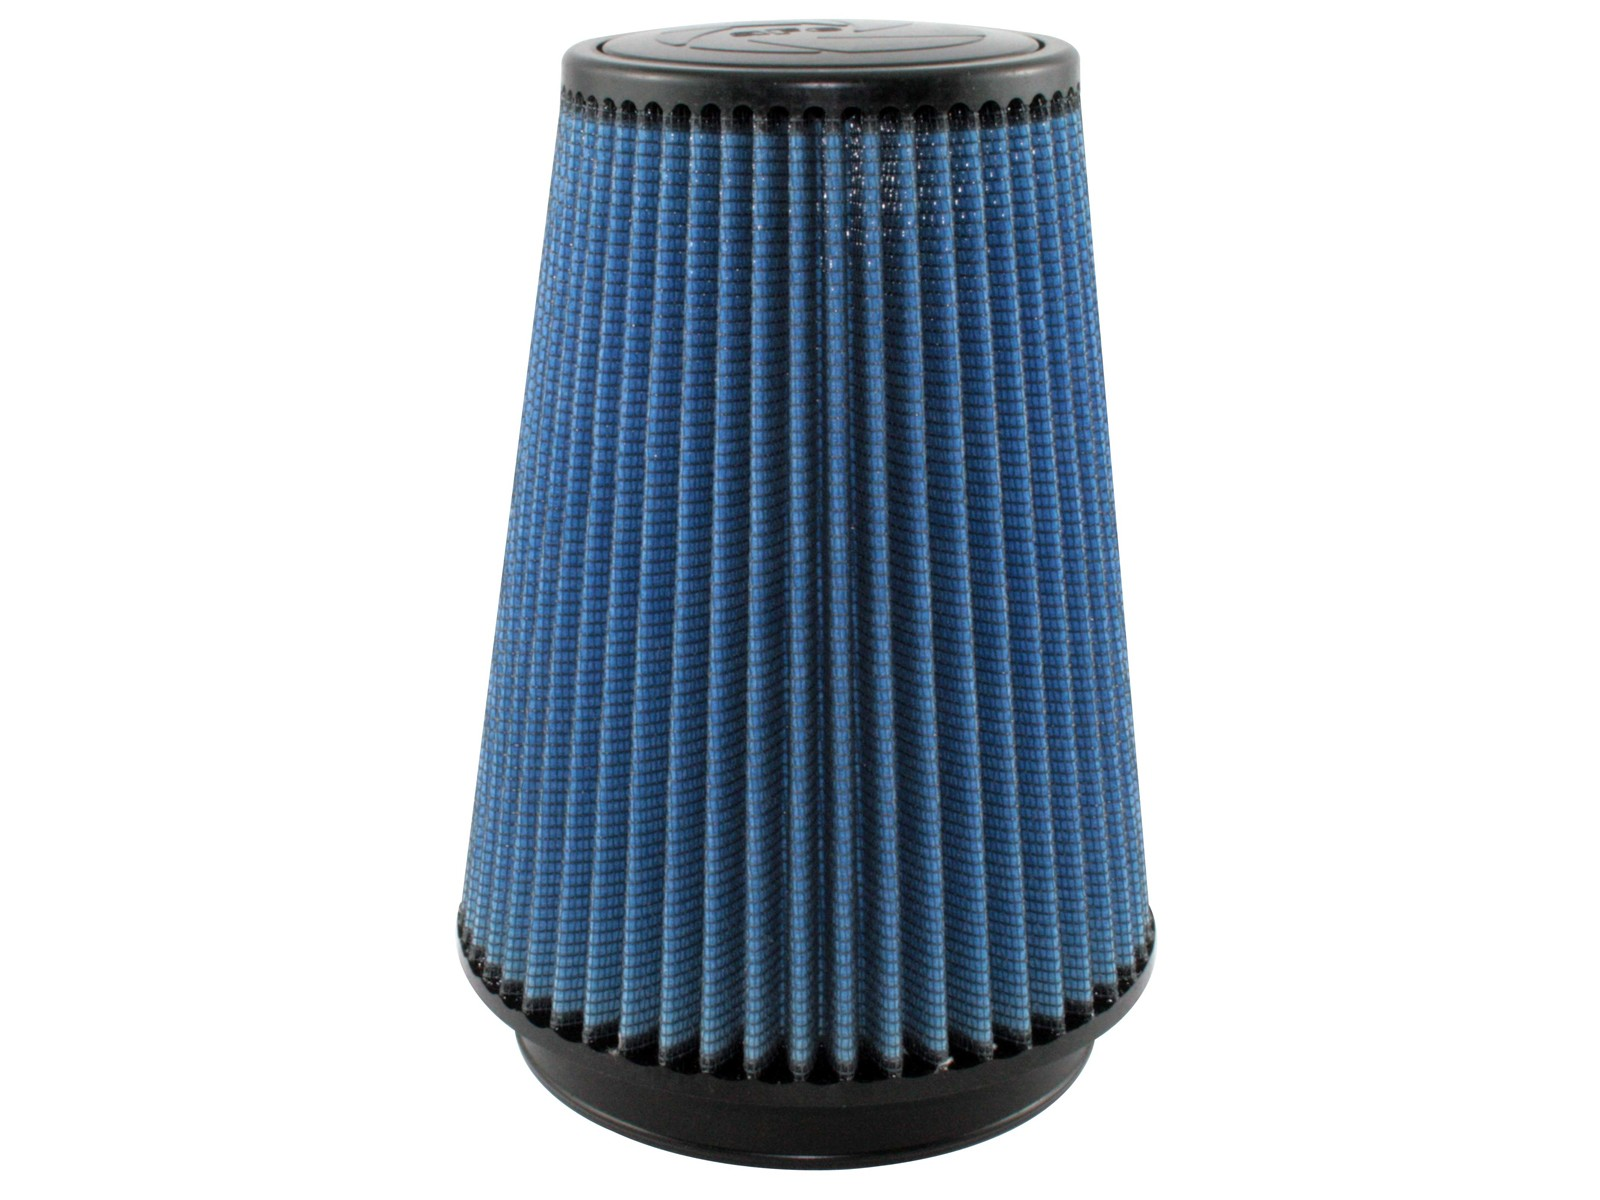 aFe POWER 24-55509 Magnum FLOW Pro 5R Air Filter